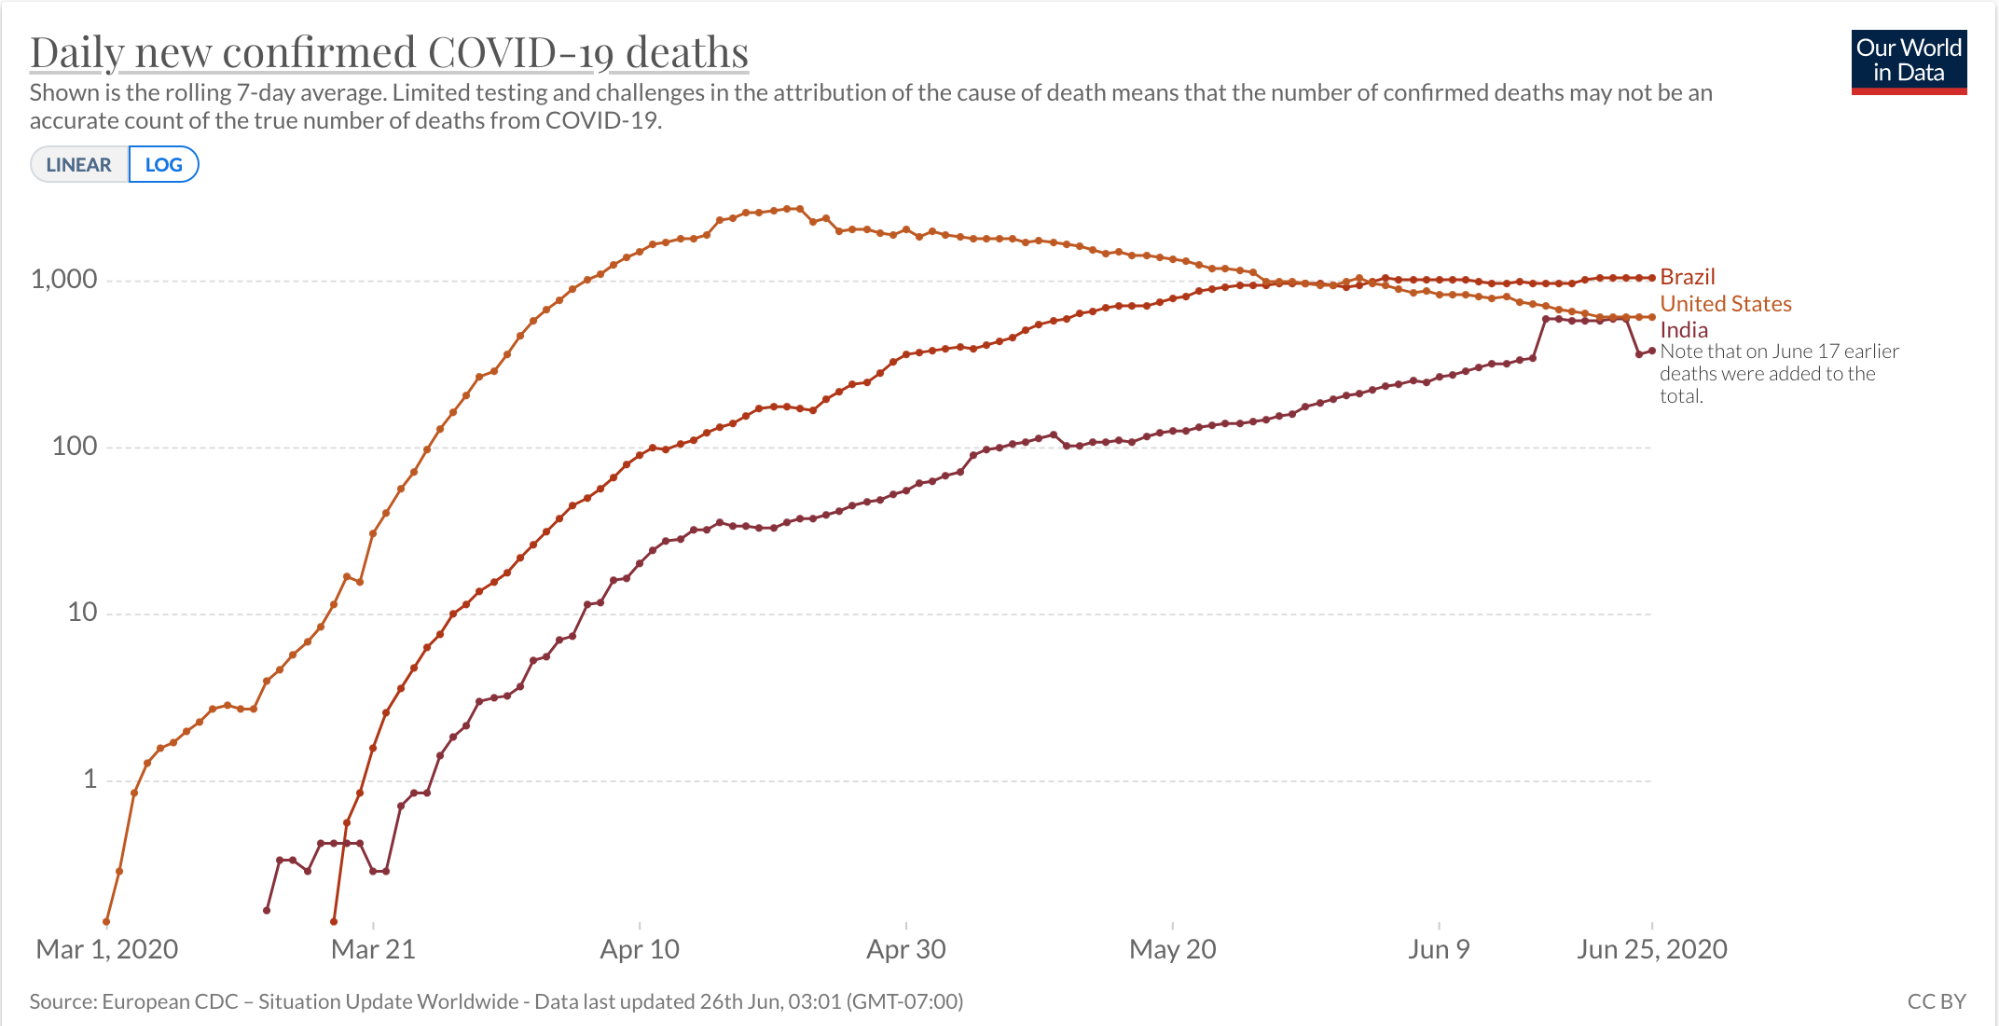 The rolling 7-day average of deaths for Brazil, United States, and India, as a logarithmic scale. Limited testing and challenges in the attribution of the cause of death means the number may not be an accurate count.